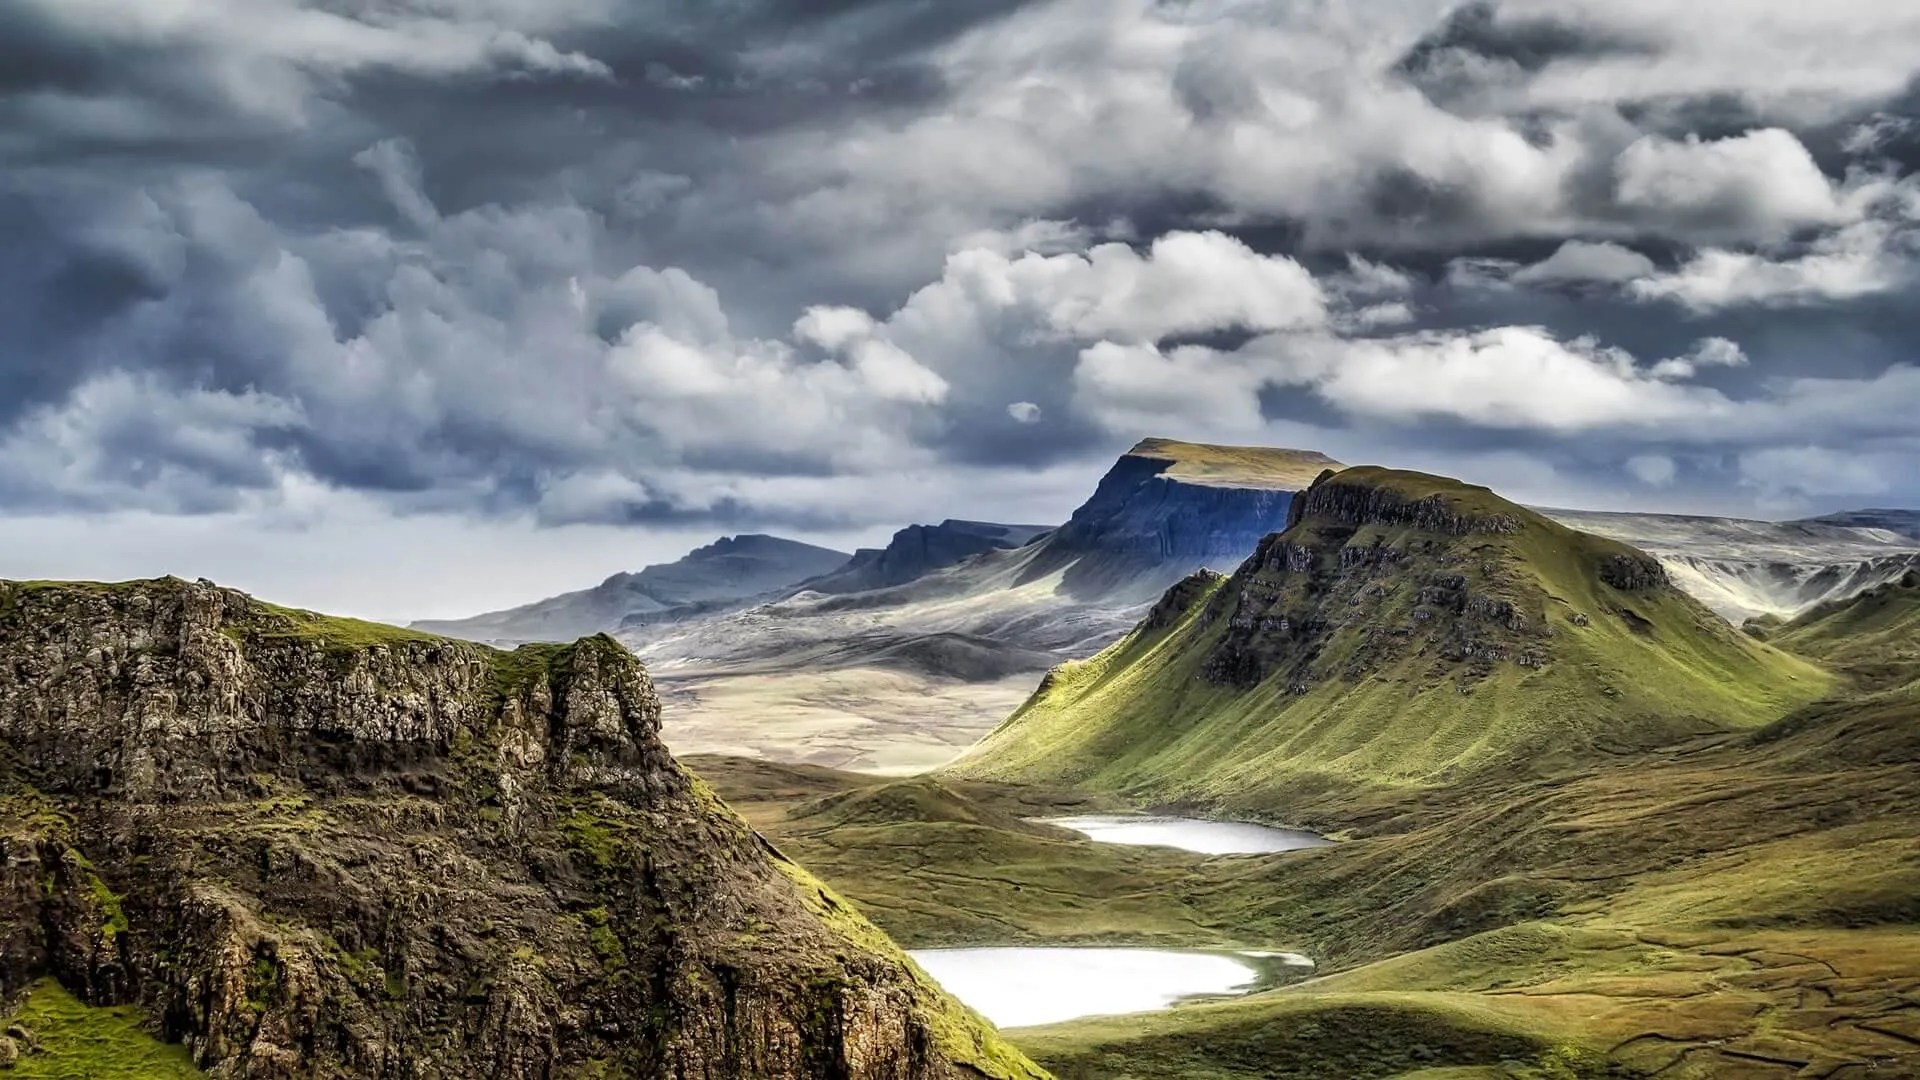 Isle of Skye - Trotternish Ridge